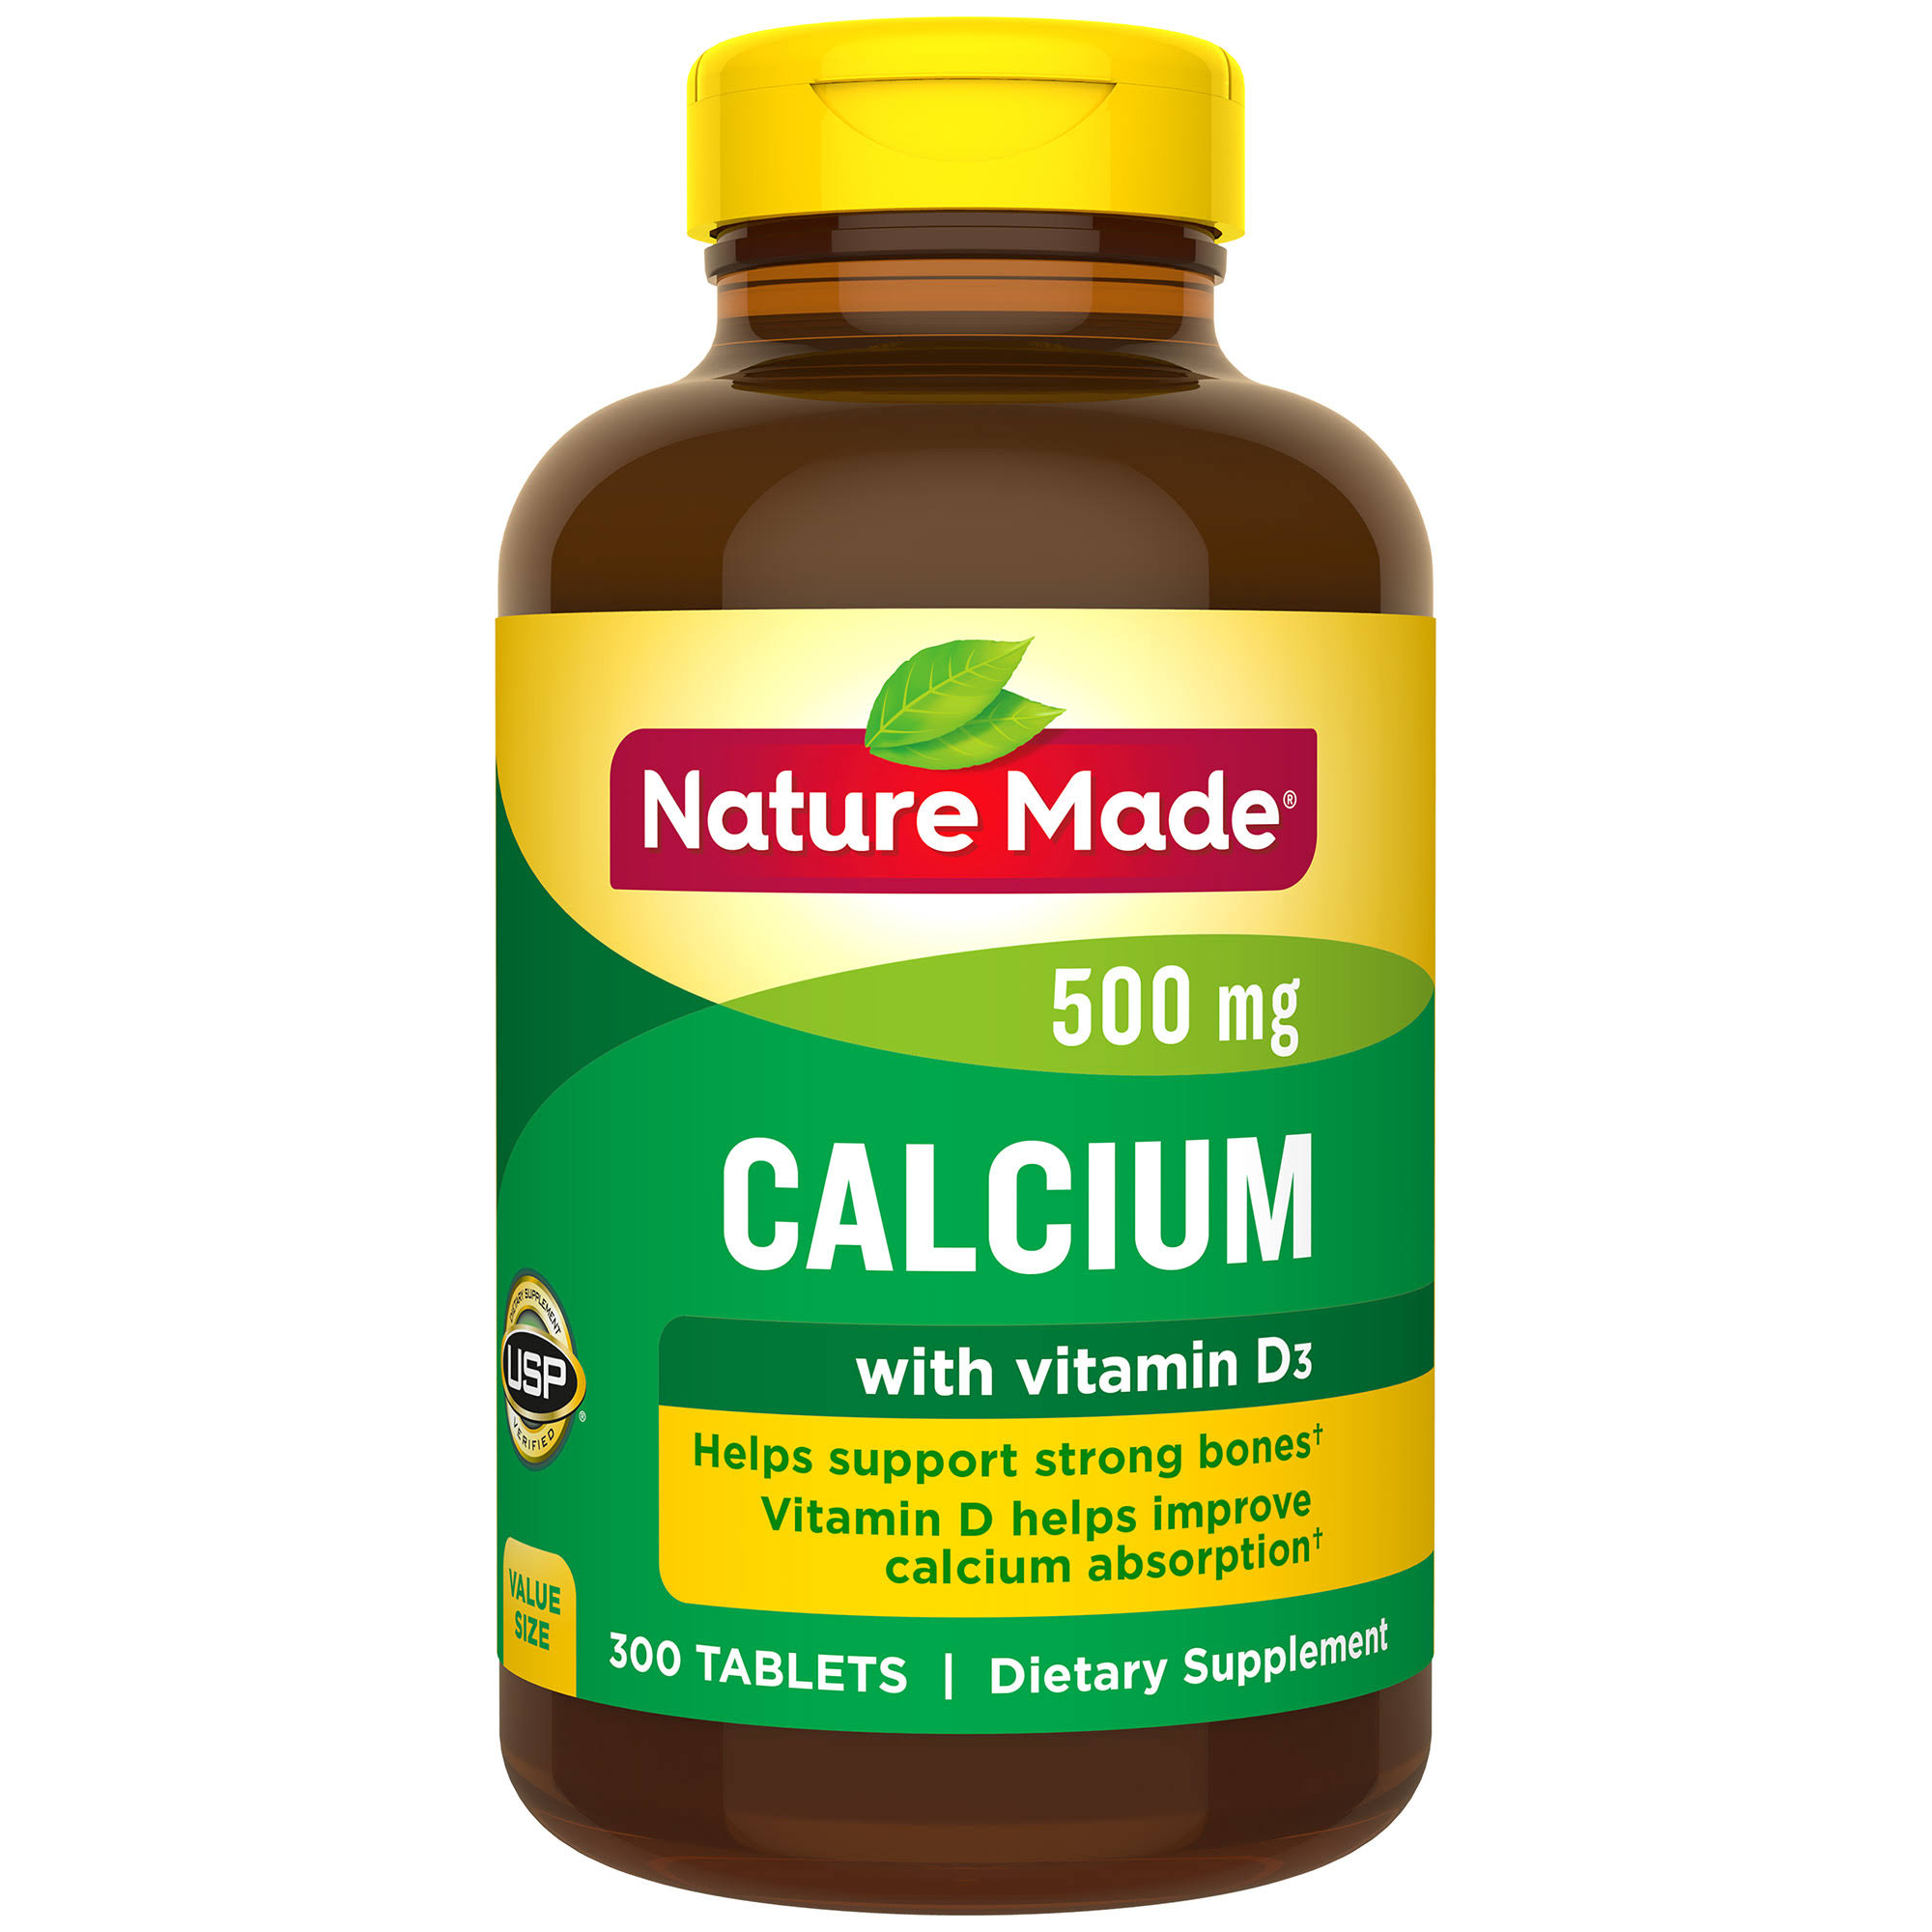 Nature Made Calcium Dietary Supplement - 300 Tablets